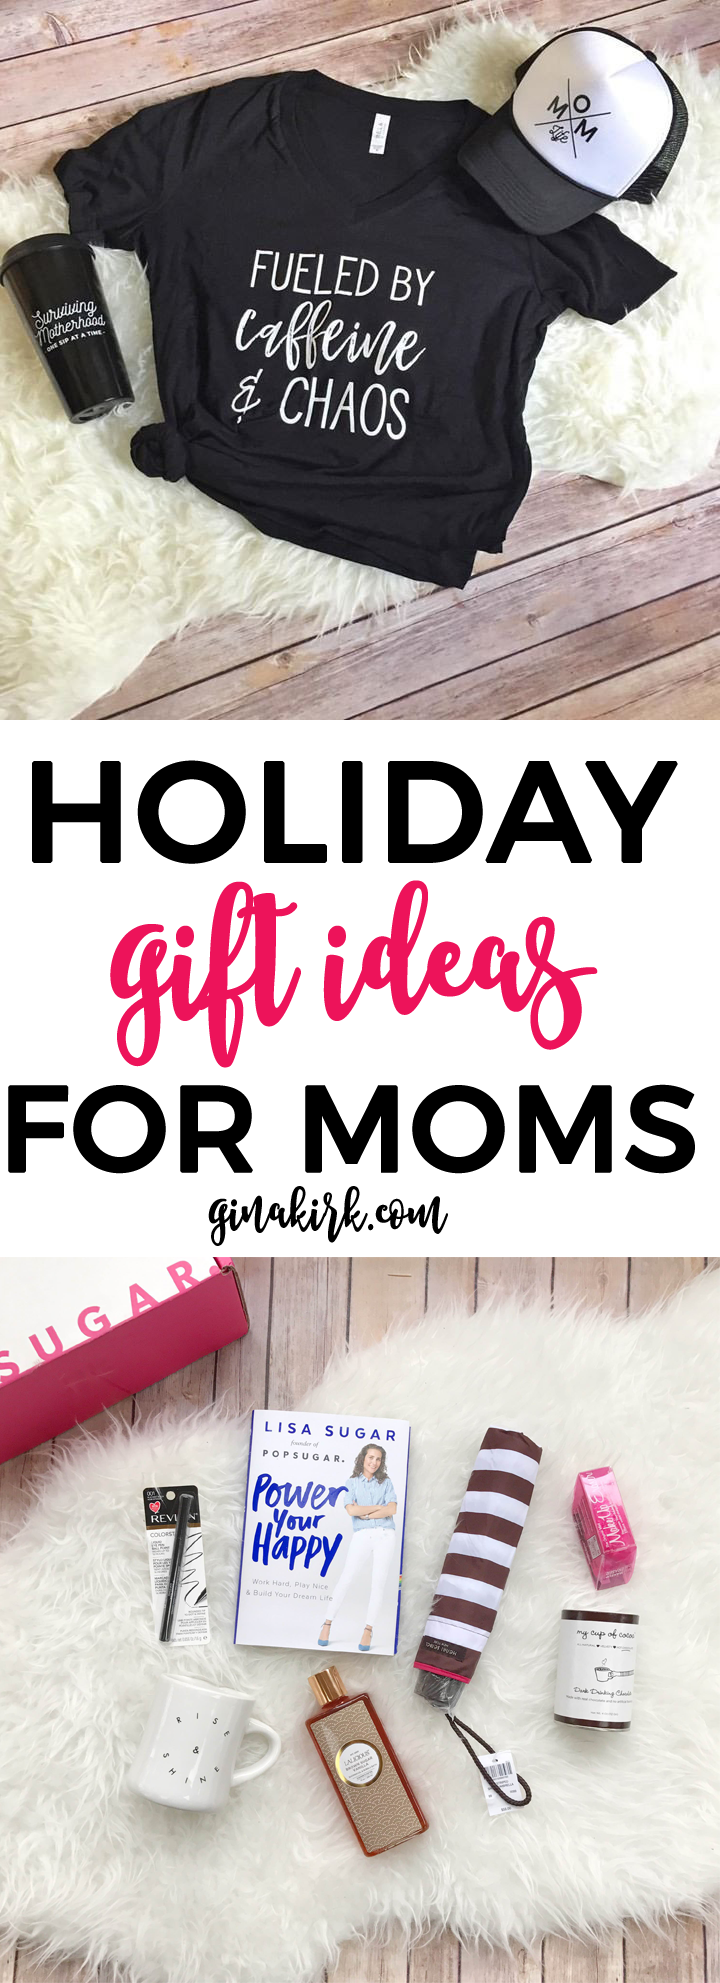 holiday gift ideas for moms what to get moms for christmas christmas gift ideas